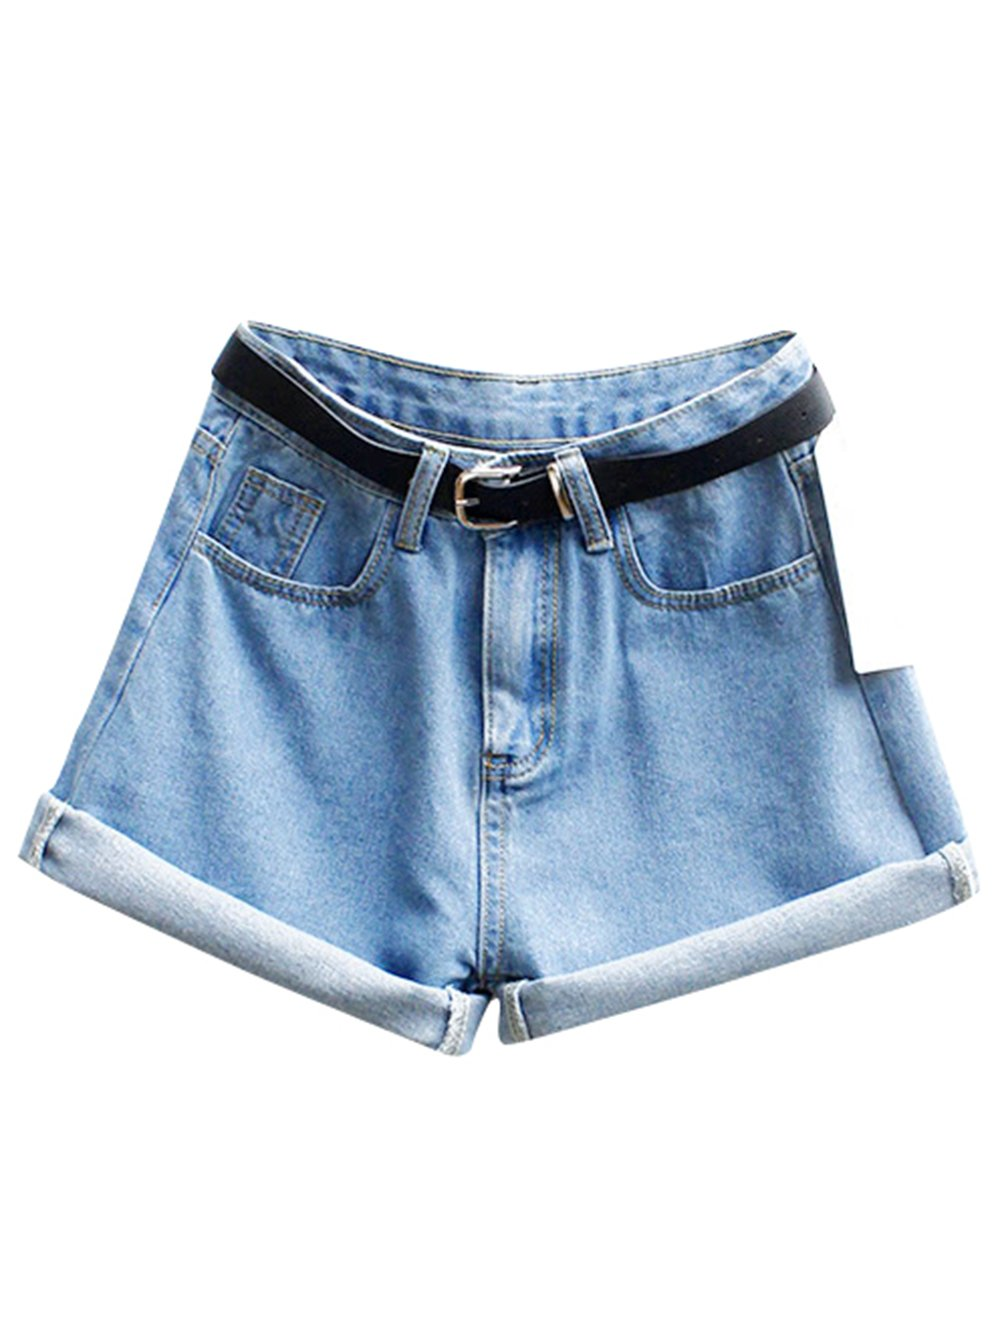 SweatyRocks Women's Retro High Waisted Rolled Denim Jean Shorts With Pockets Blue M